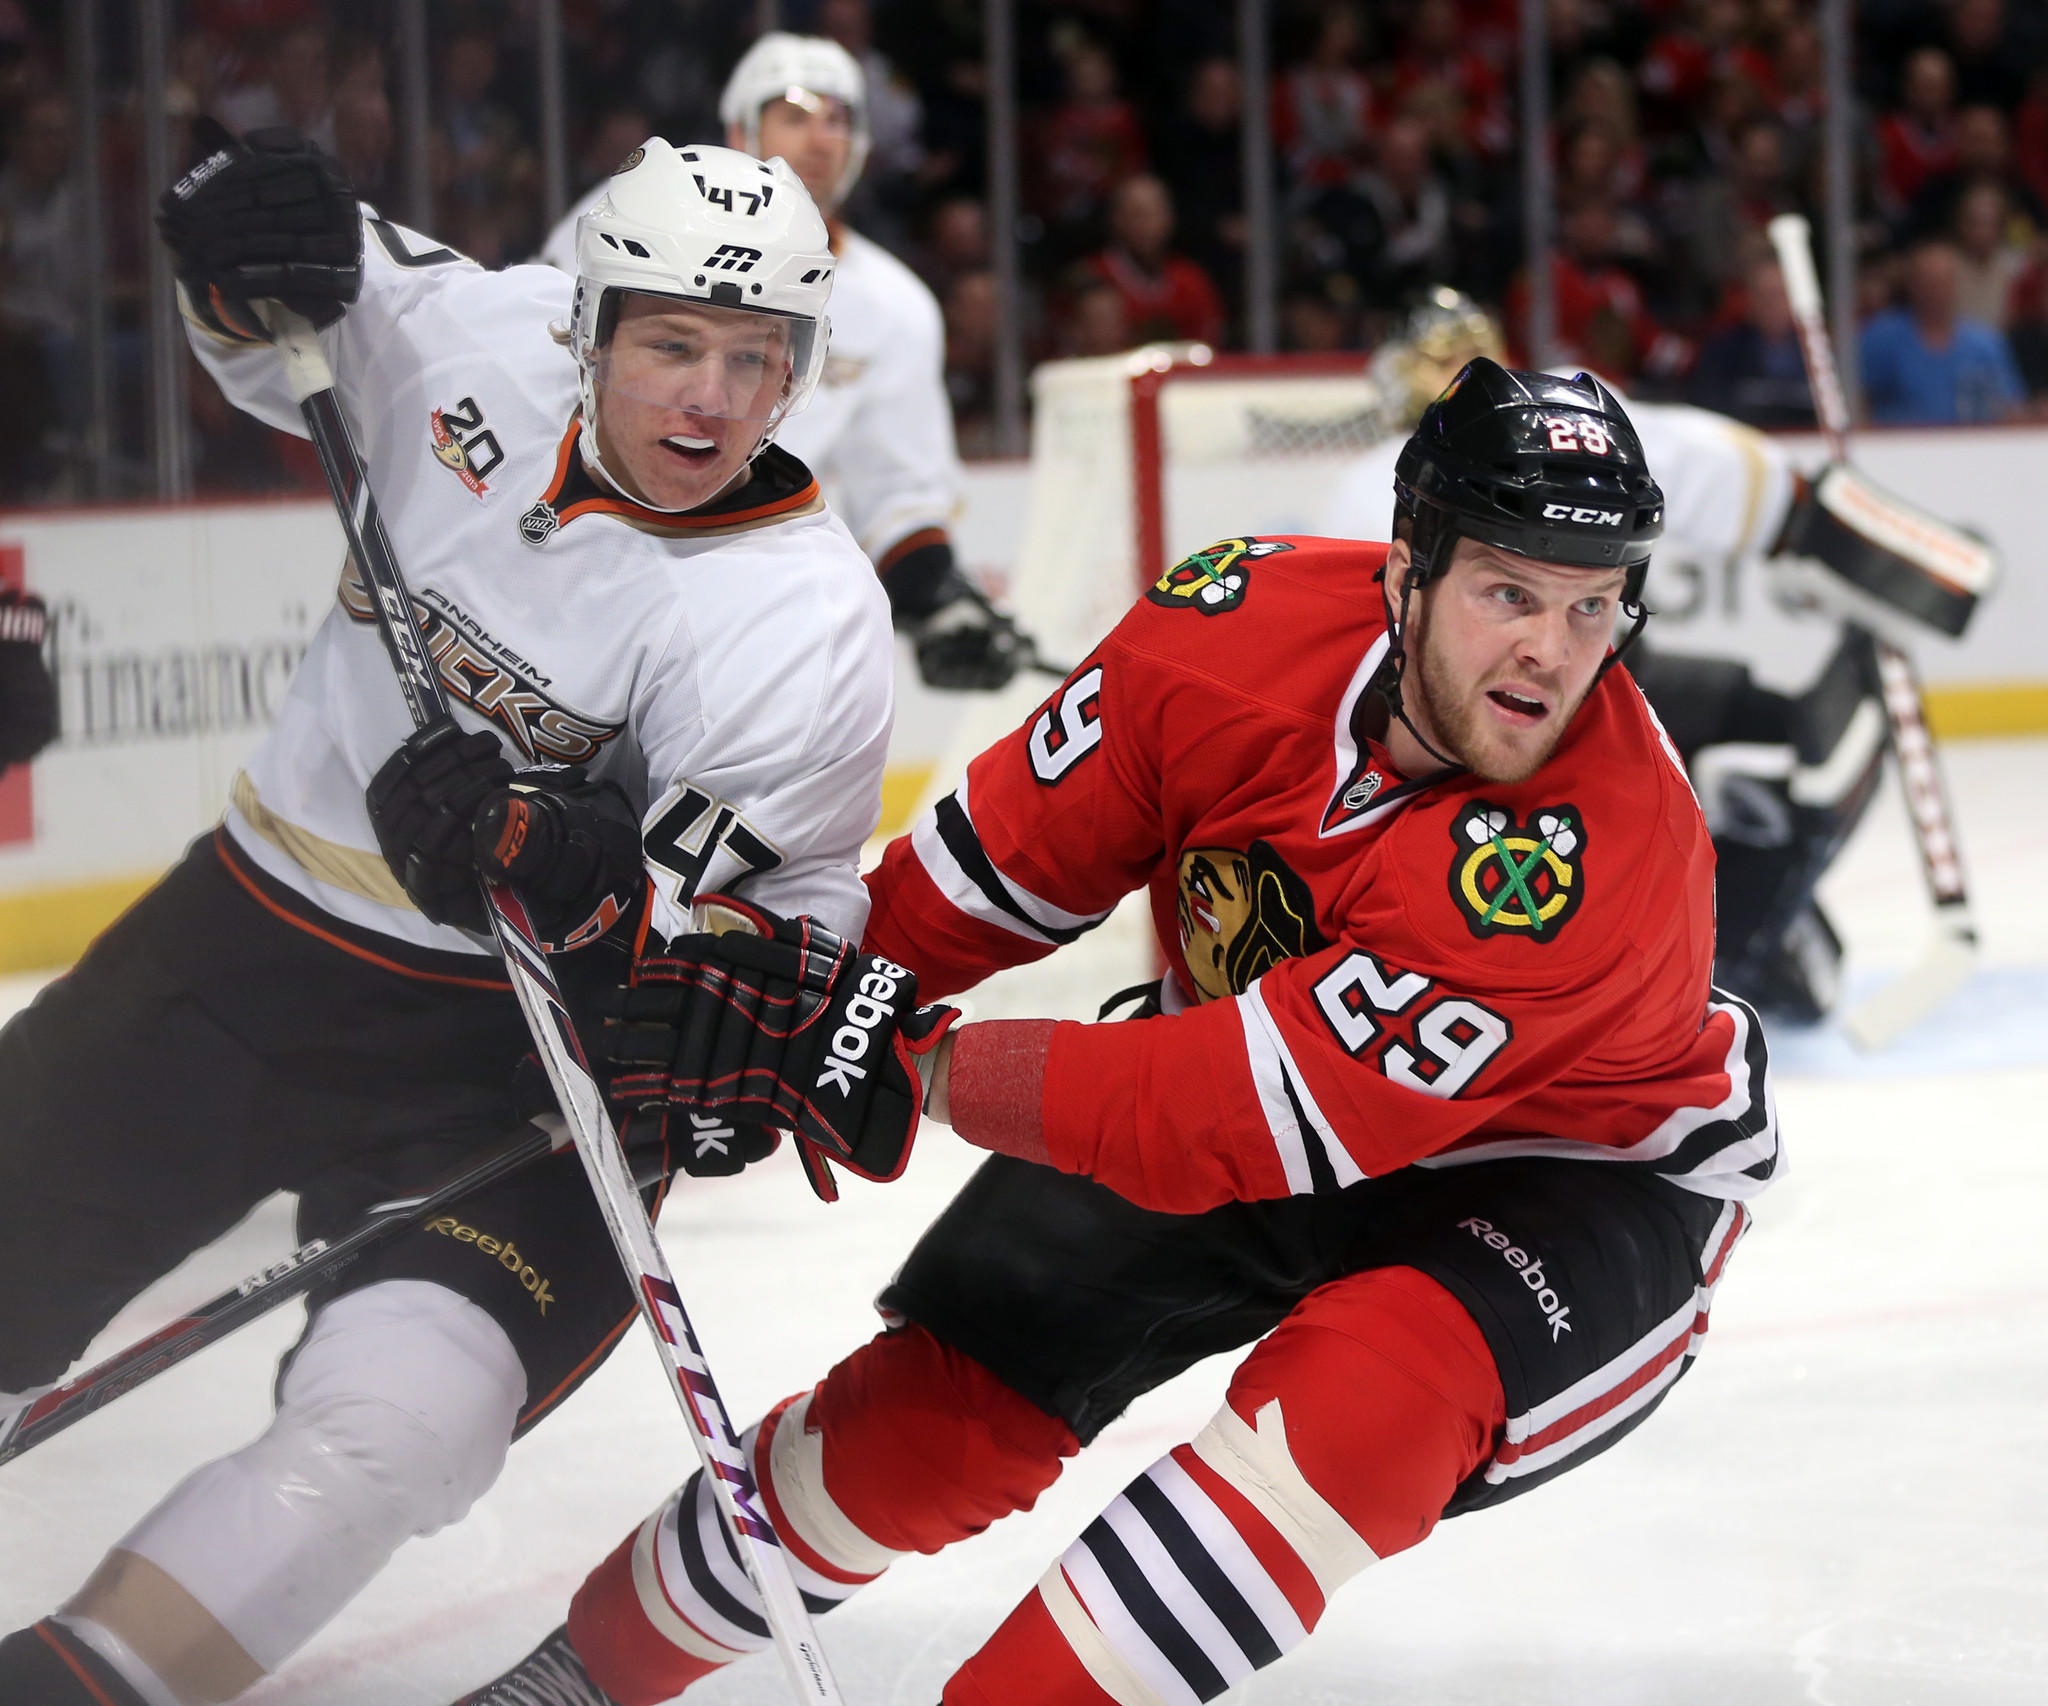 Blackhawks left wing Bryan Bickell skates against Ducks defenseman Hampus Lindholm in the first period.